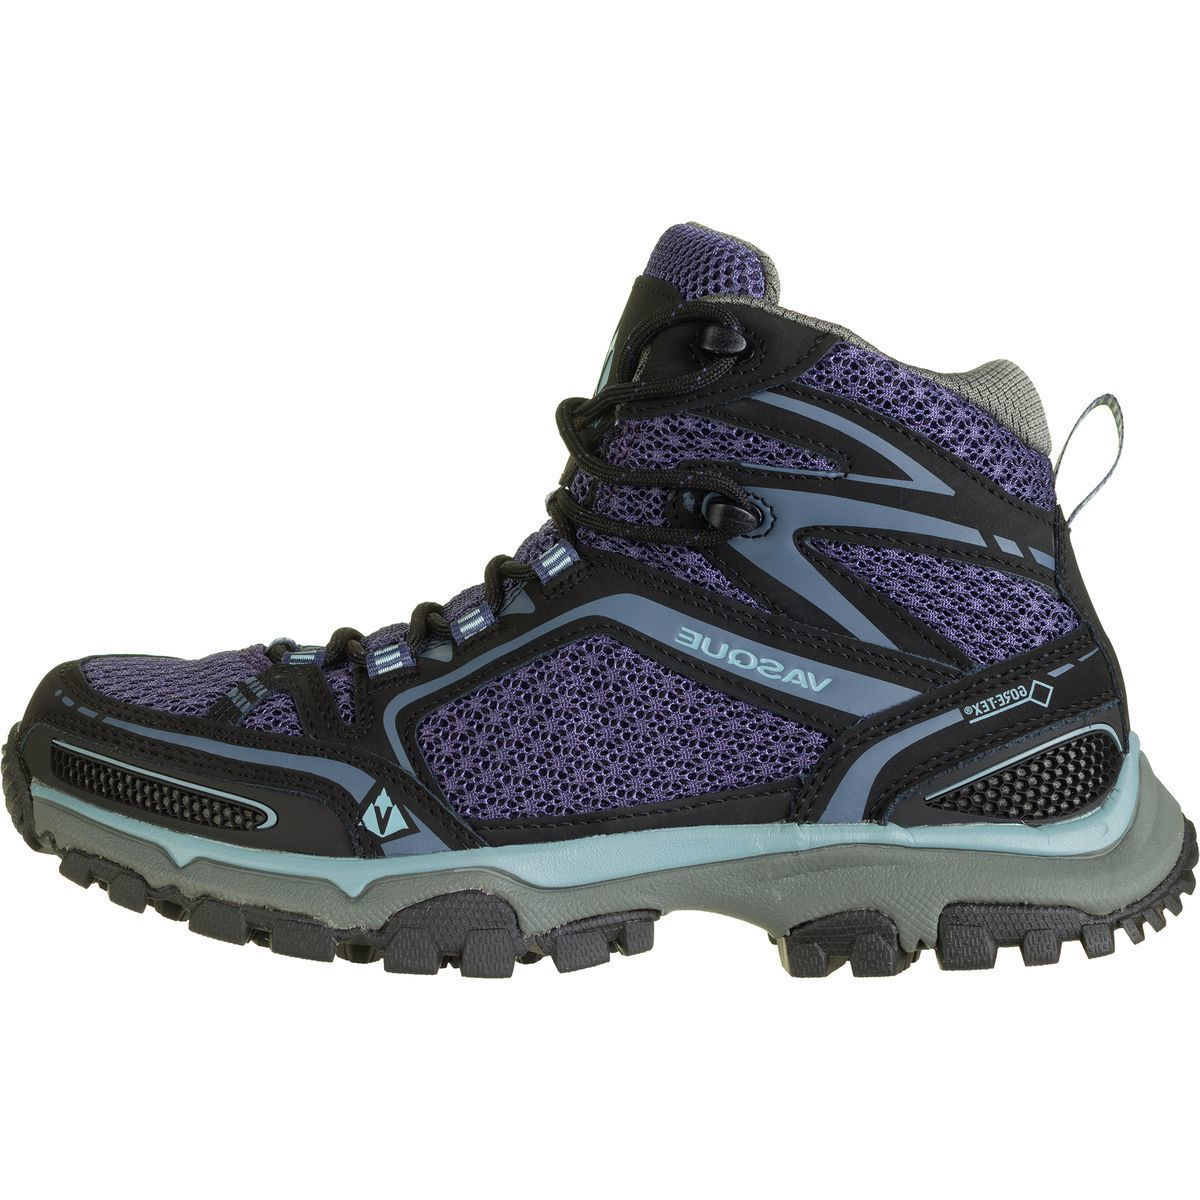 Vasque Inhaler II GTX Hiking Boot - Women's